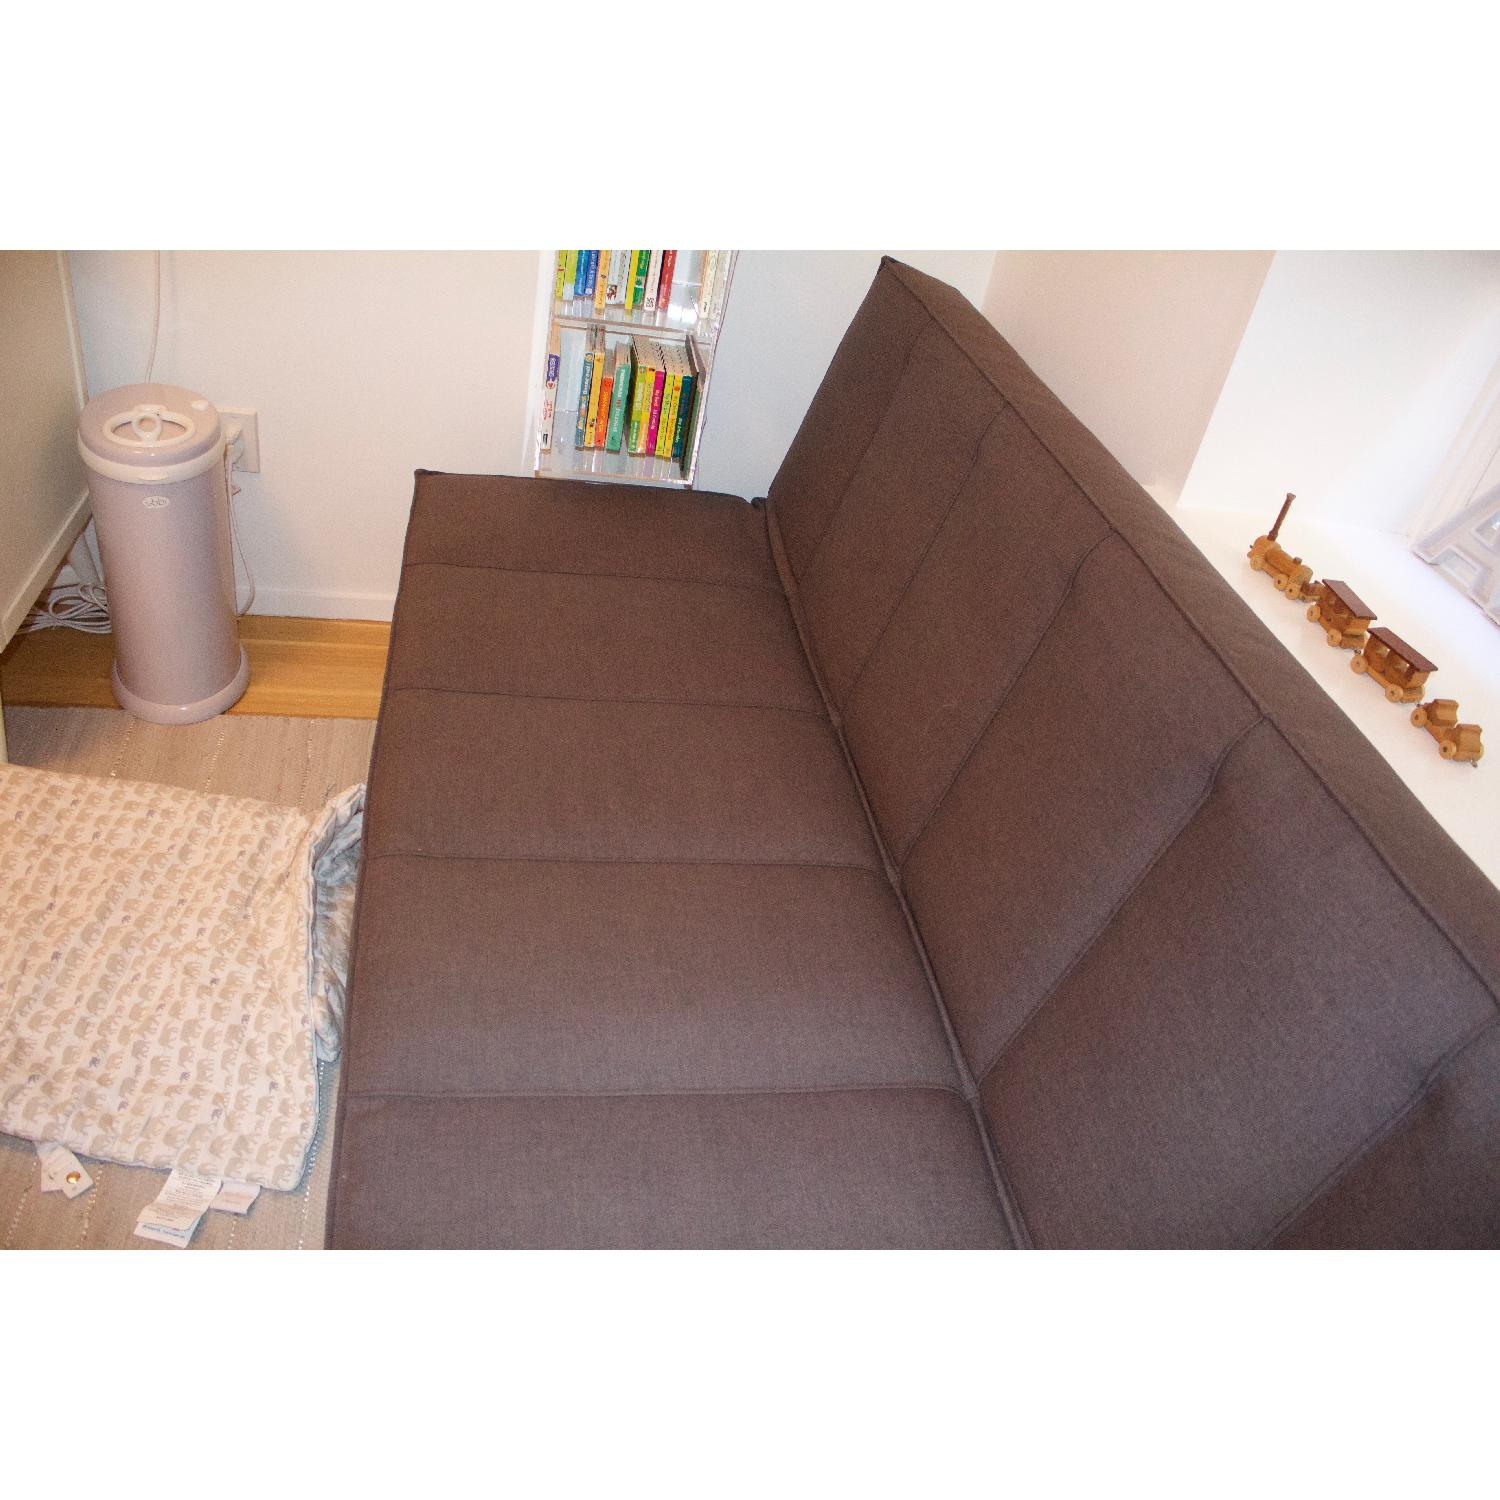 CB2 Flex Gravel Sleeper Sofa - image-21